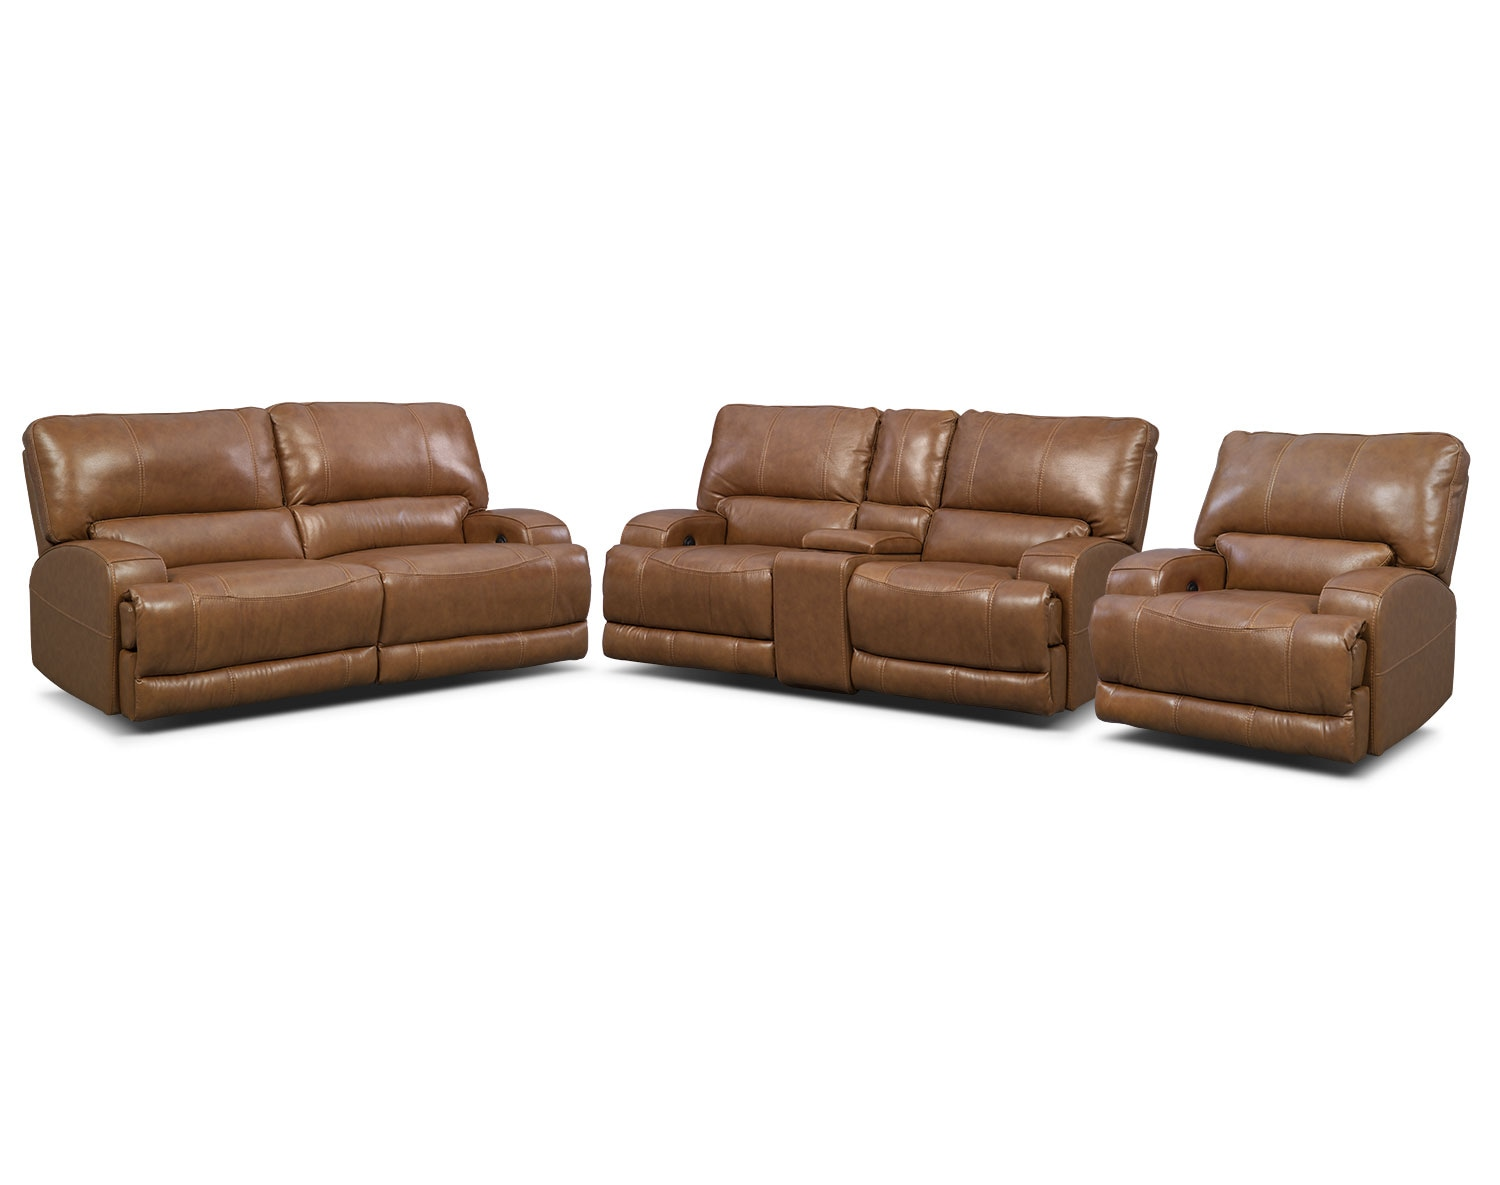 Leather Living Room Chairs Leather Living Room Furniture American Signature Furniture